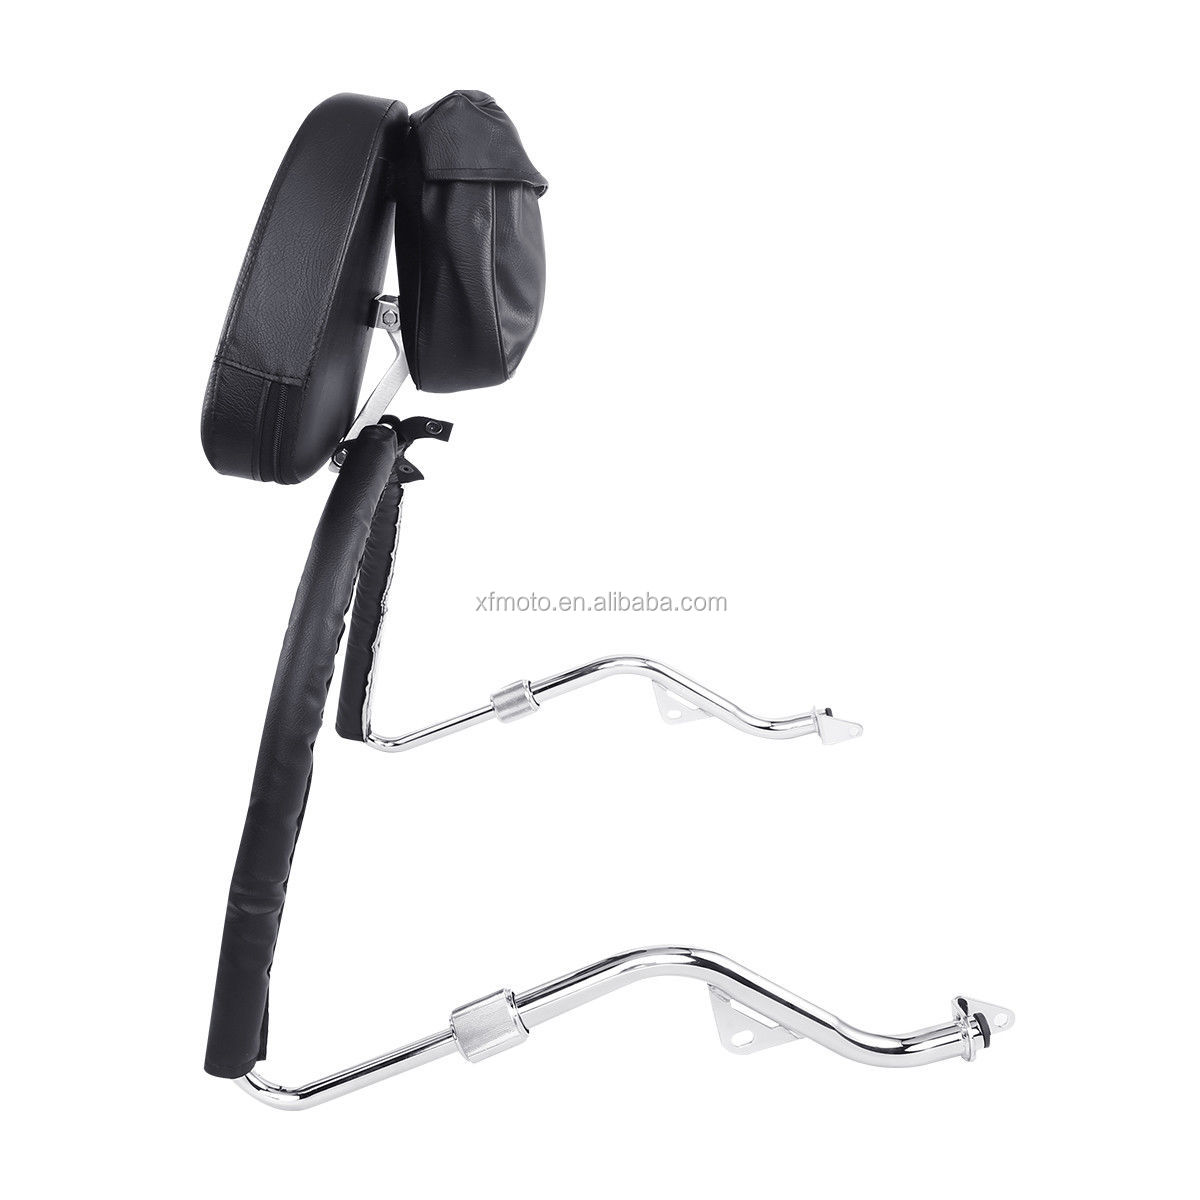 TCMT XF-GL1954-E Sissy Bar Backrest Set W/ Airbag For Honda Gold Wing GL 1800 2001-2016 2011